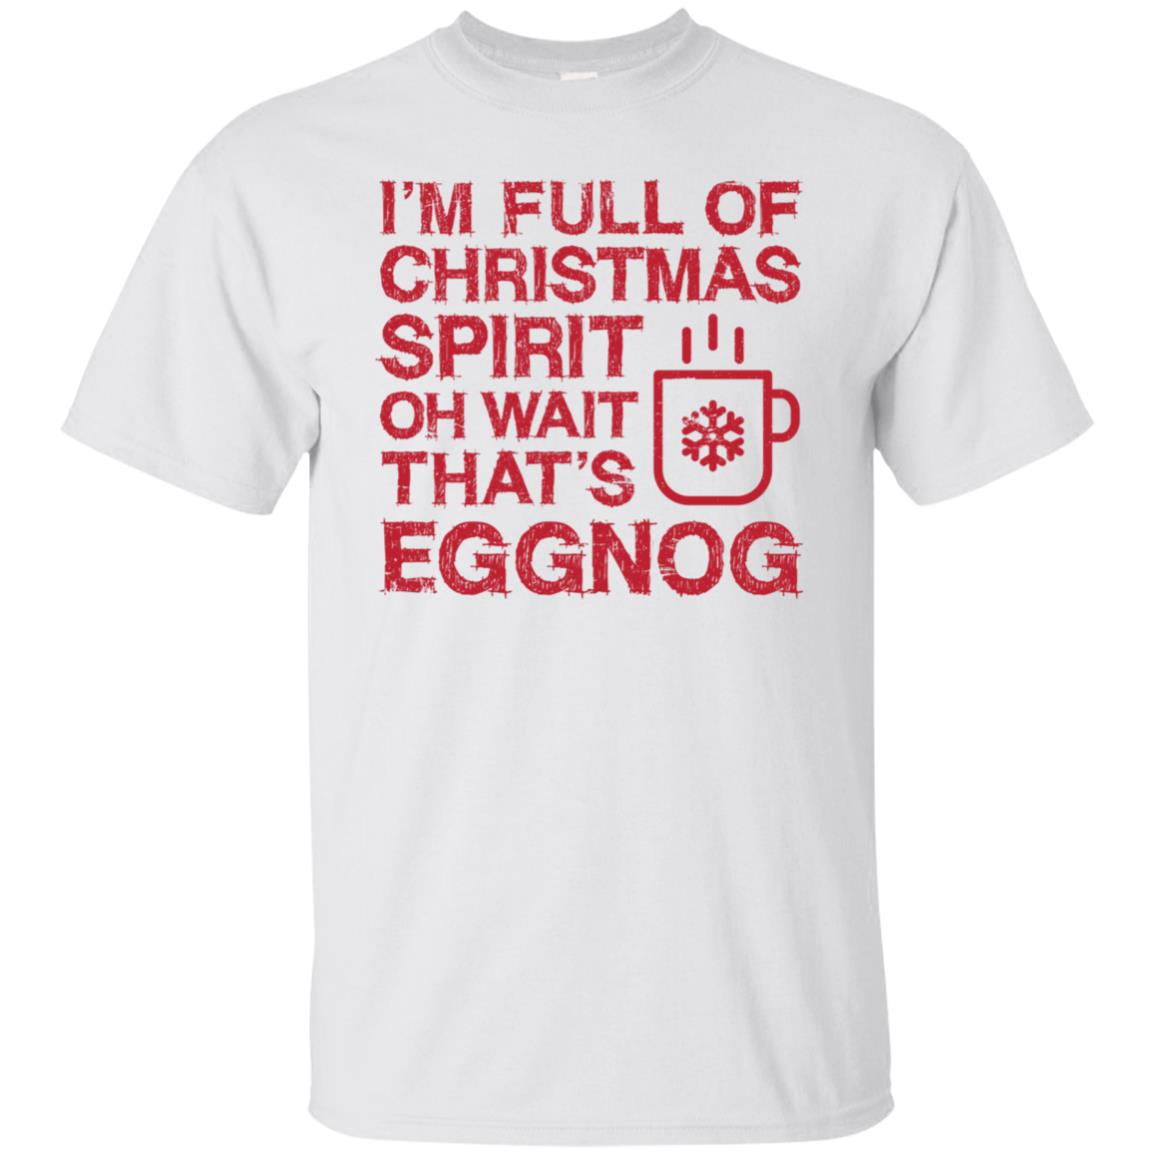 I'm Full of Christmas Spirit Oh Wait That's Eggnog - -6 Unisex Short Sleeve